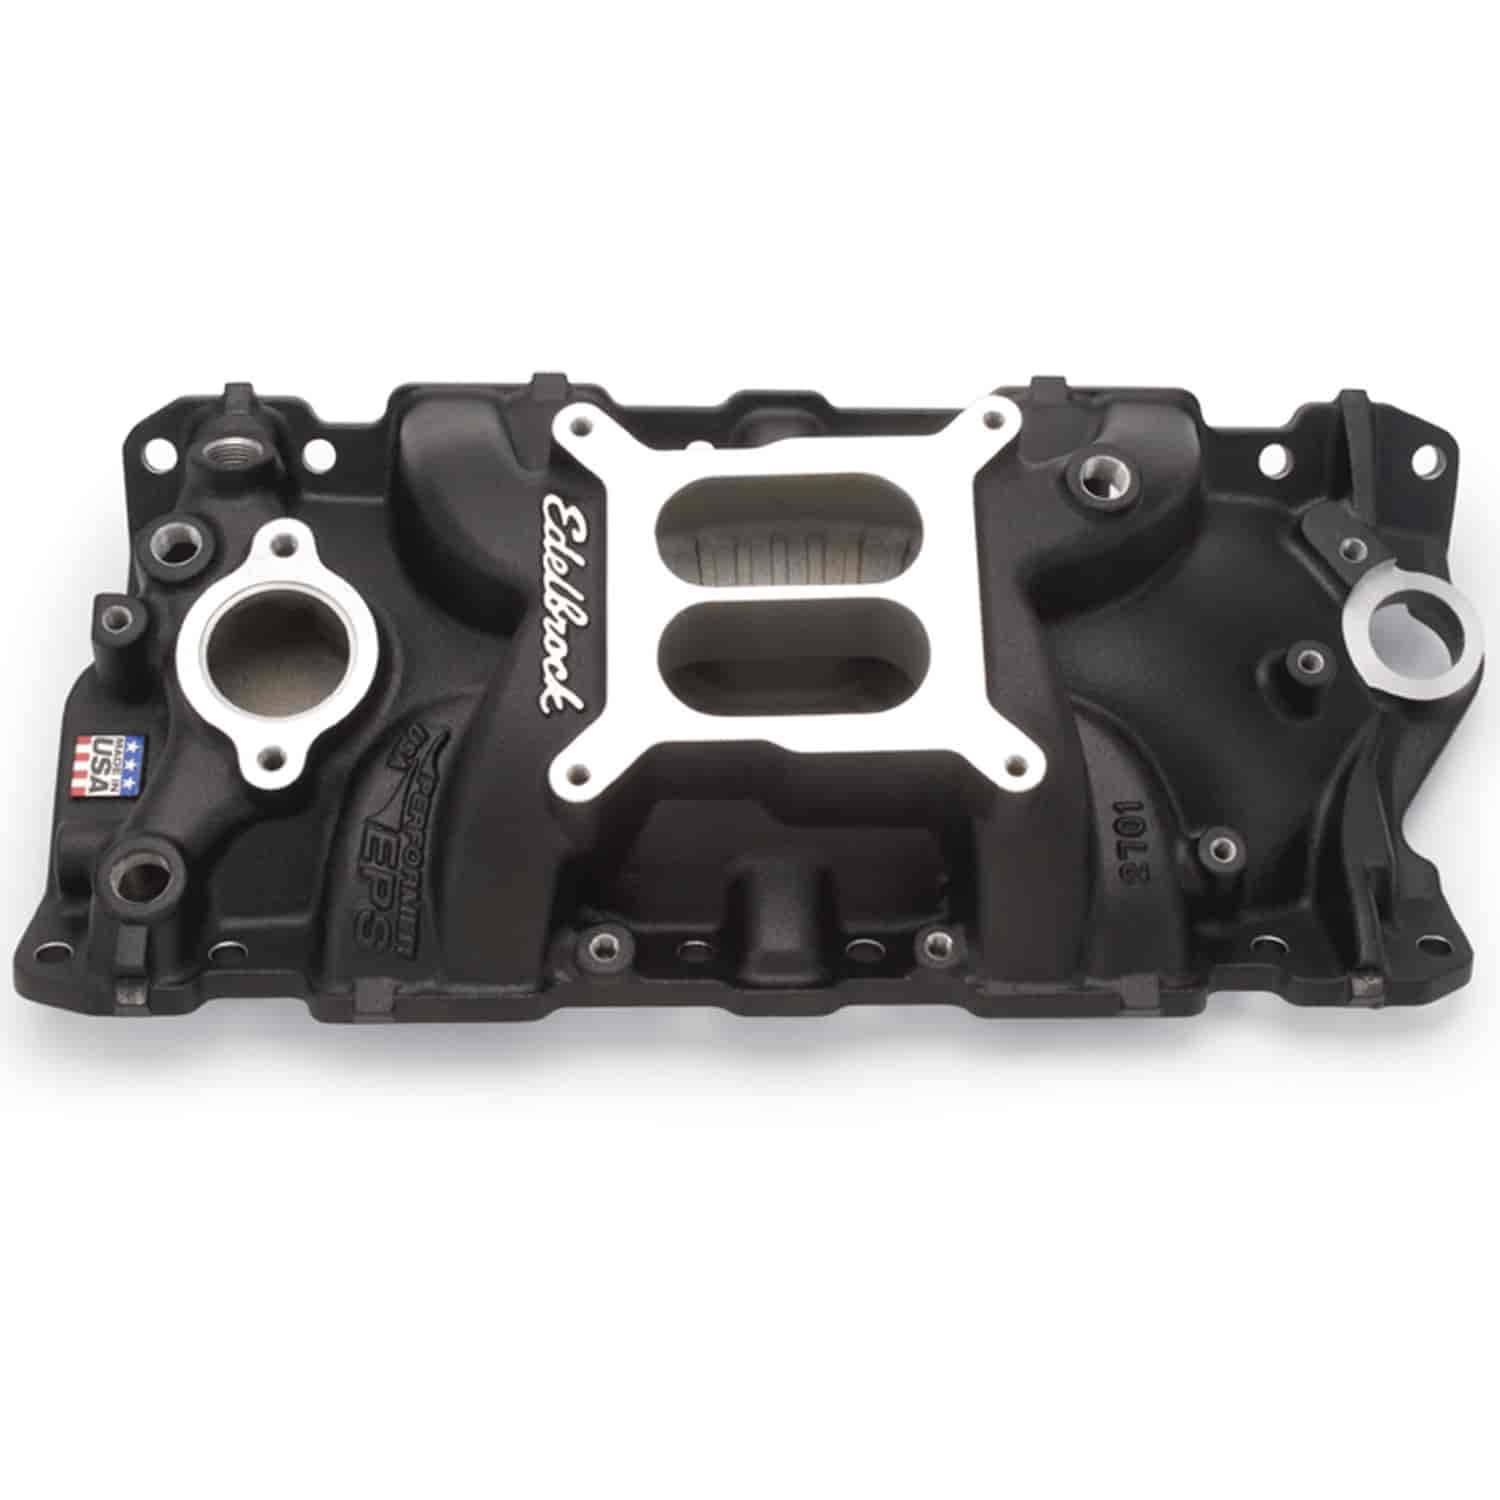 Edelbrock 27013 - Edelbrock Performer EPS Intake Manifolds for Chevrolet